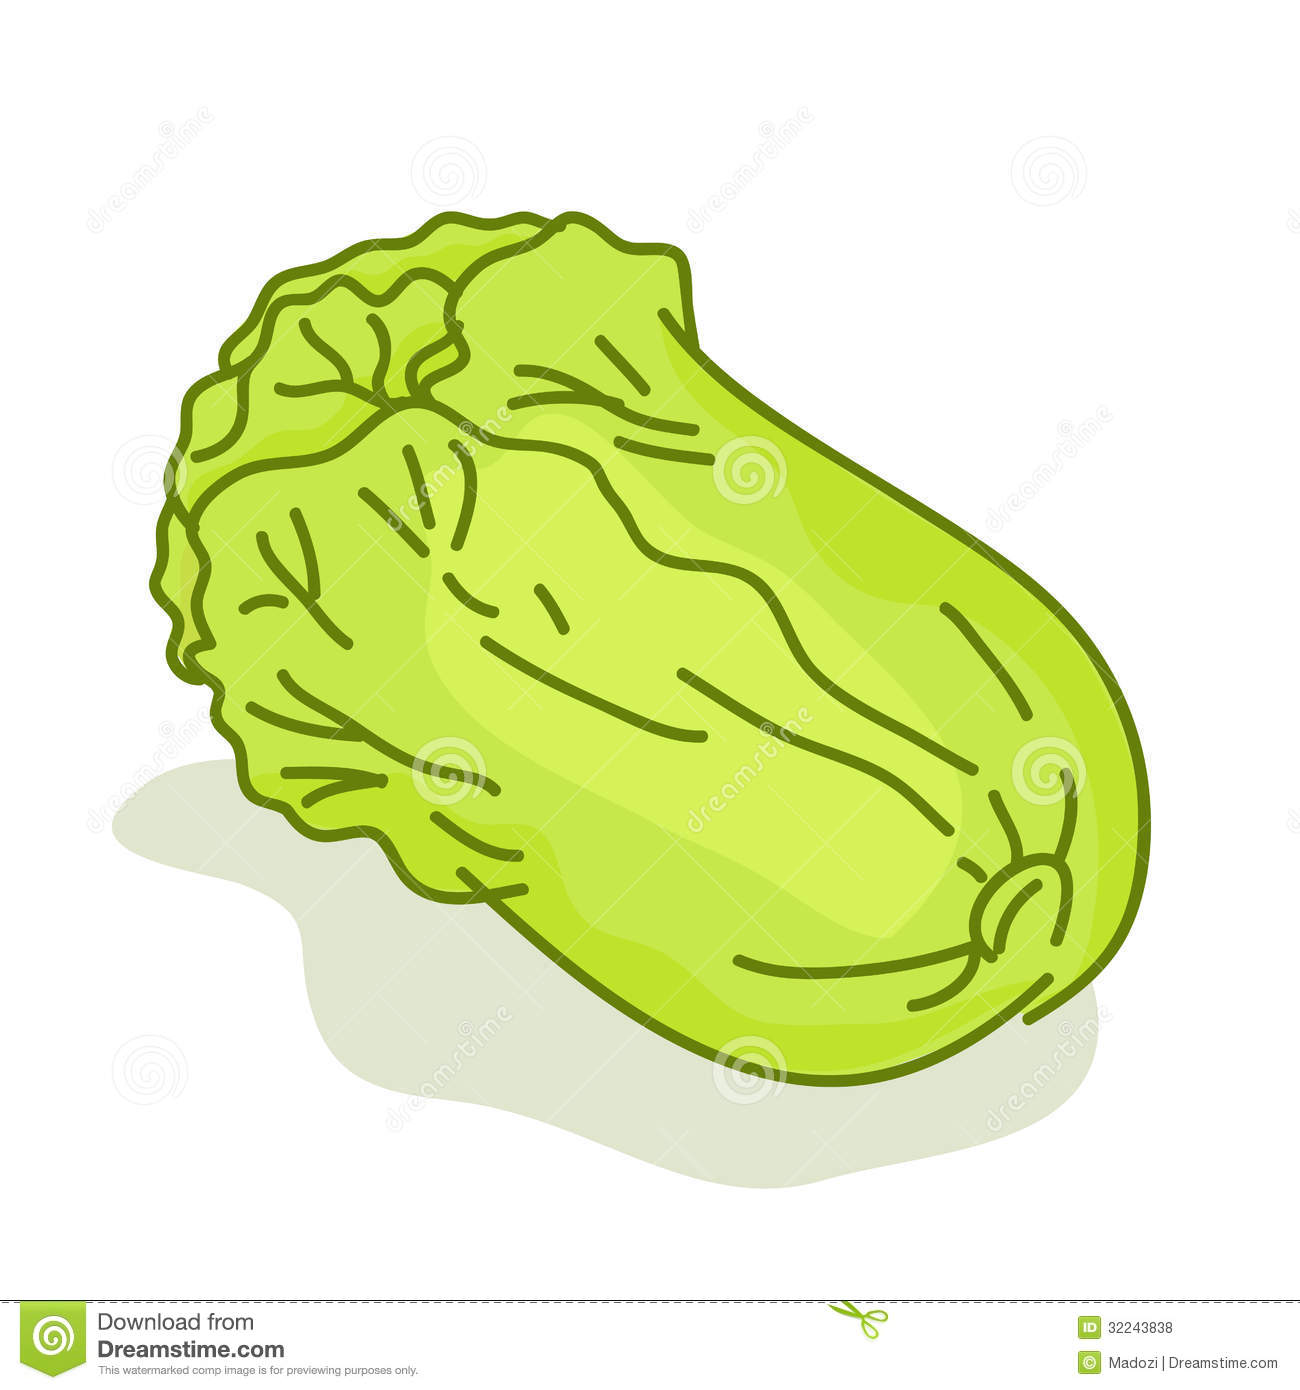 Lettuce Cartoon Isolated Illustration Royalty Free Stock Photos ...